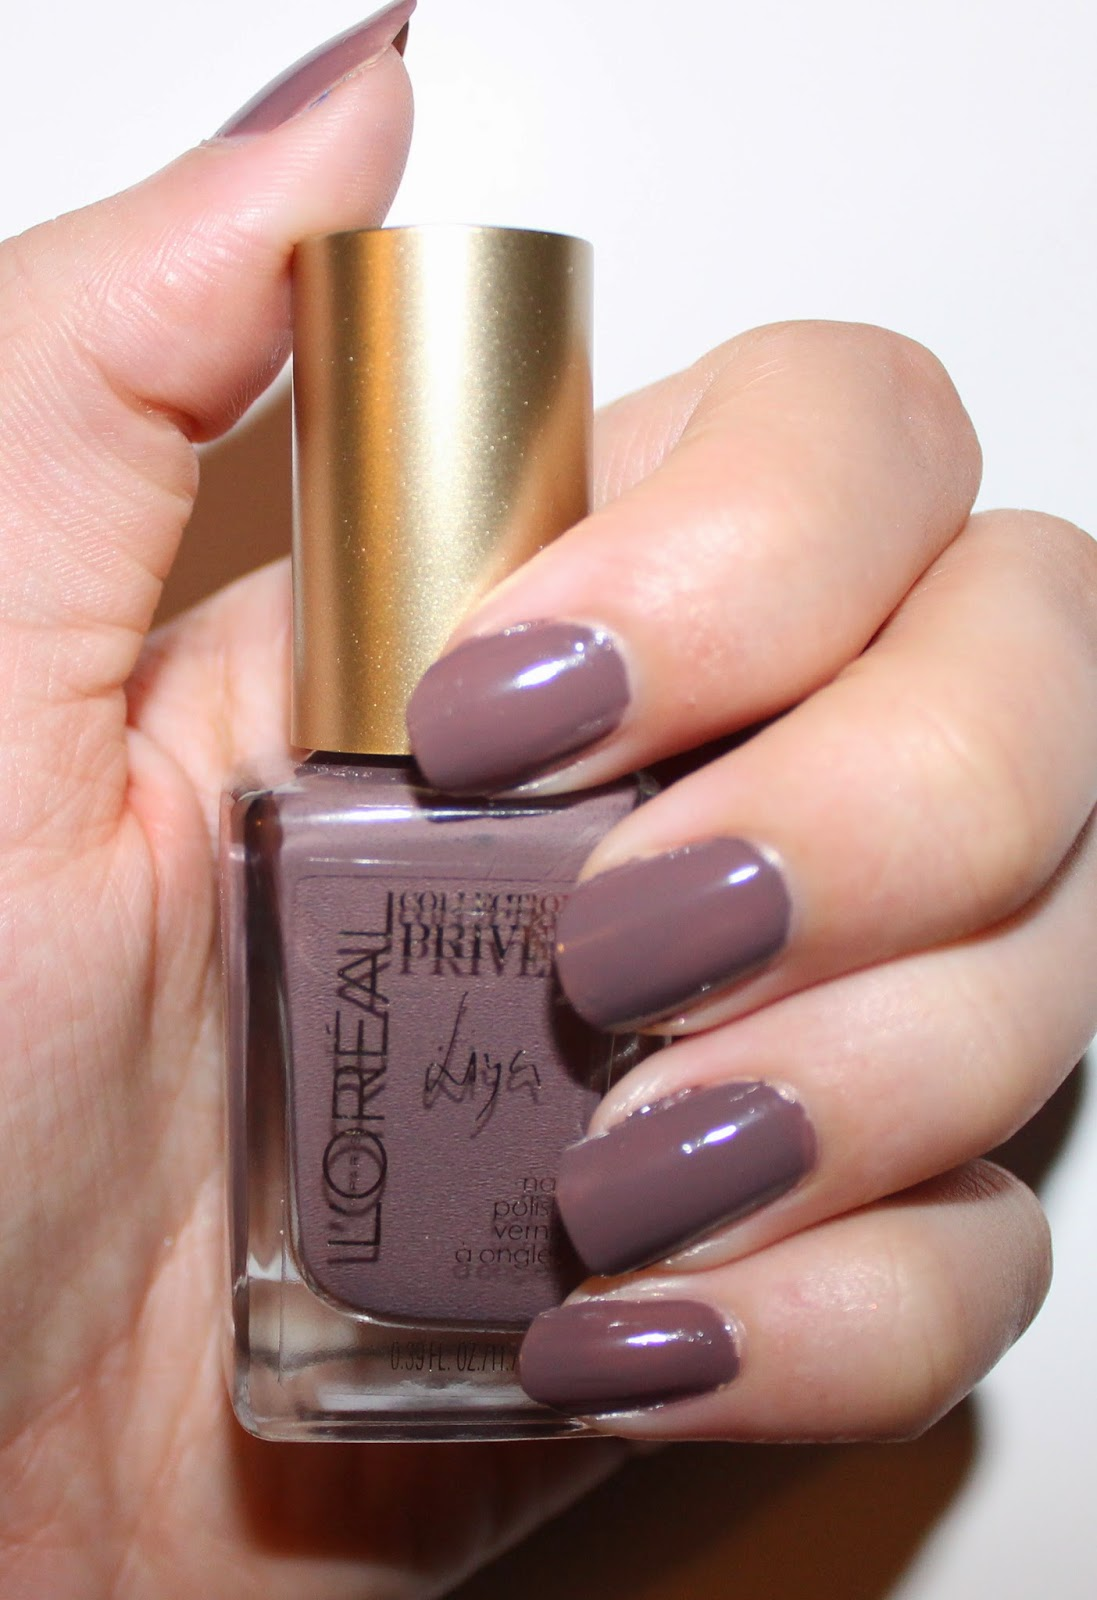 L'Oréal Collection Privée Exclusive Nudes Nail Polishes Liya